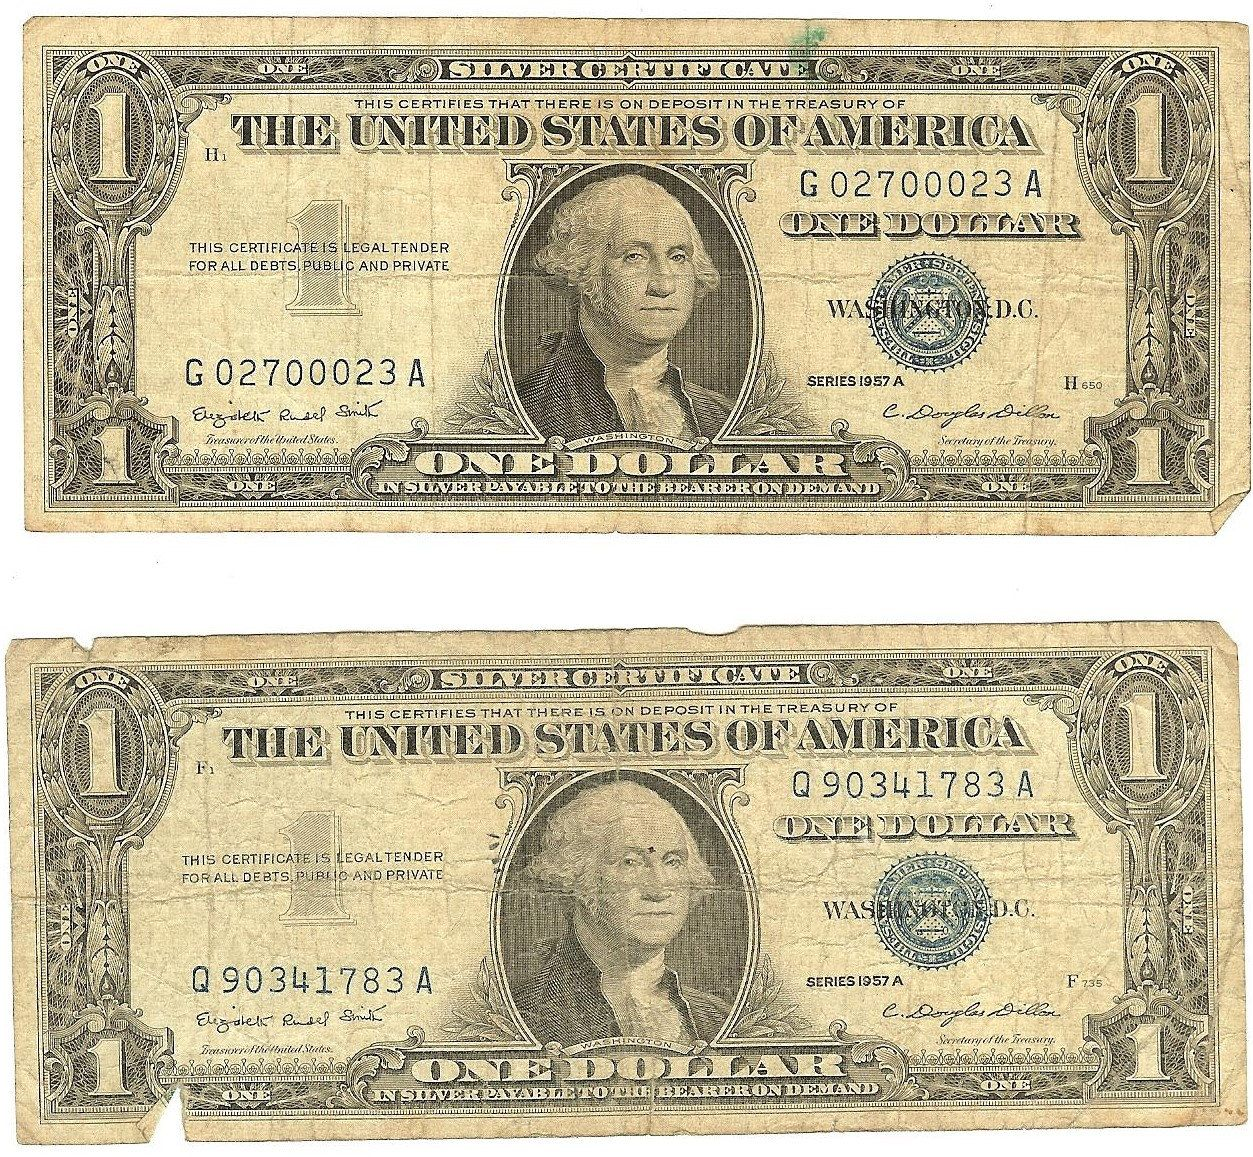 Vintage 1957 silver certificates one dollar bills old money 59 vintage 1957 silver certificates one dollar bills old money 59 year old birthday gift lk set of two xflitez Images